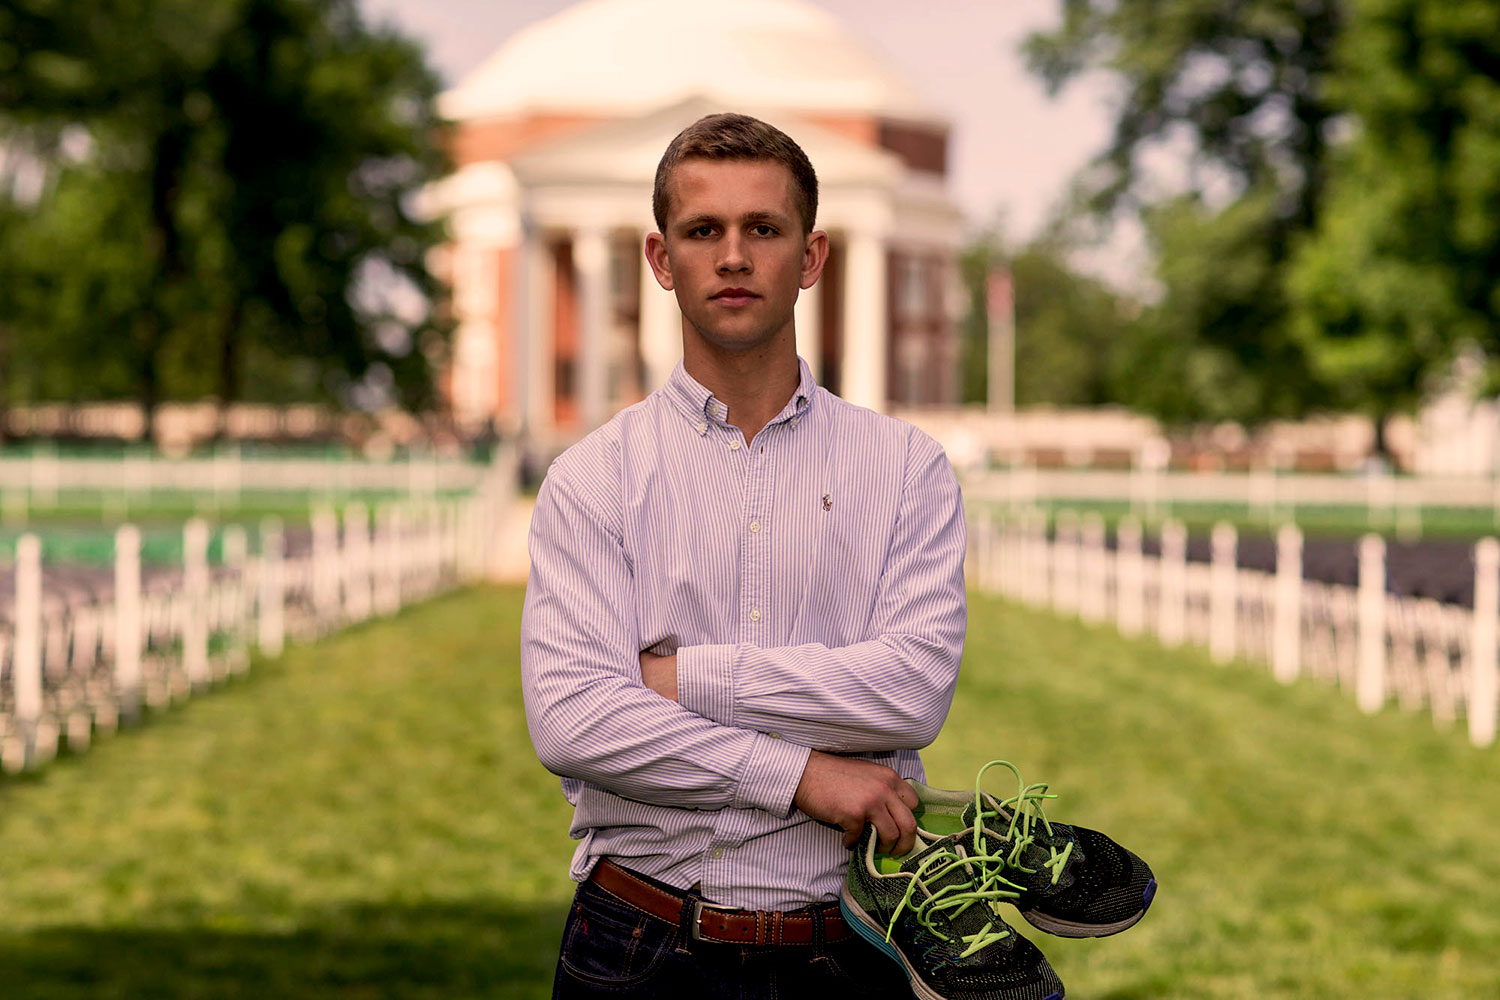 Recent UVA grad Sam Hitch runs on the Lawn in preparation for a cross-country triathlon that he will attempt this summer in order to raise money and awareness for pancreatic cancer research.